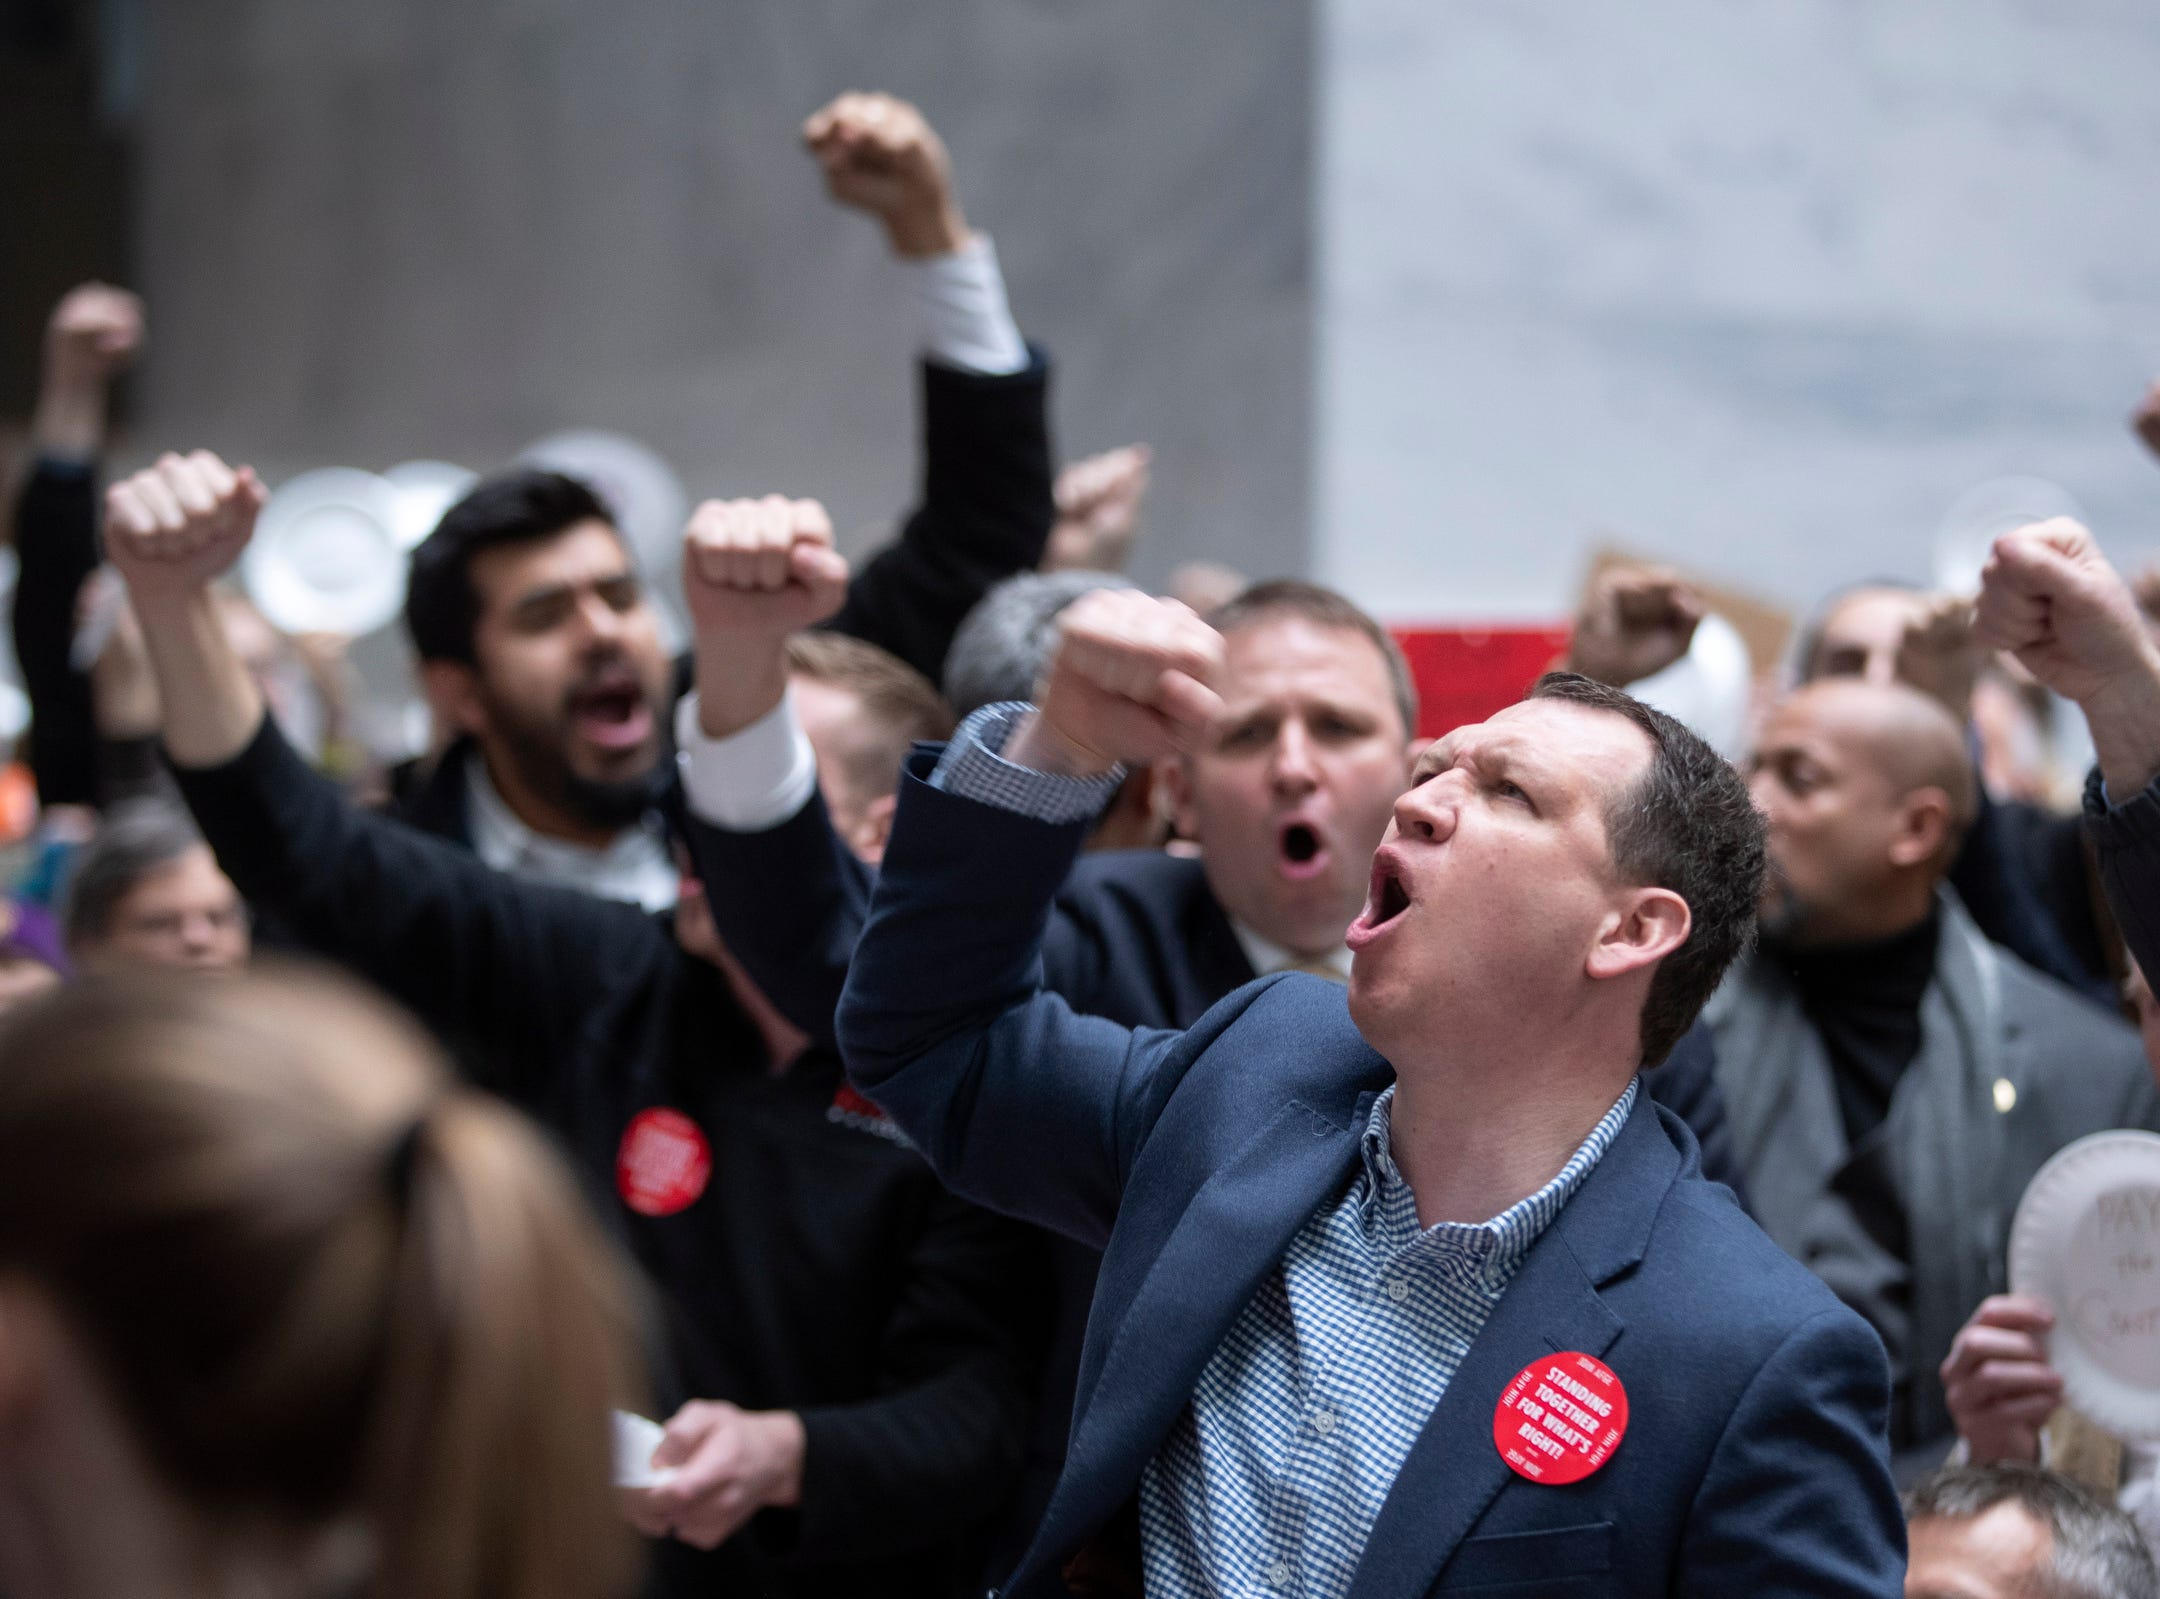 People shout slogans as they participate in the 'Occupy Hart' protest against the partial government shutdown sponsored by American Federation of Government Employees at the Hart Senate Office Building in Washington, DC.